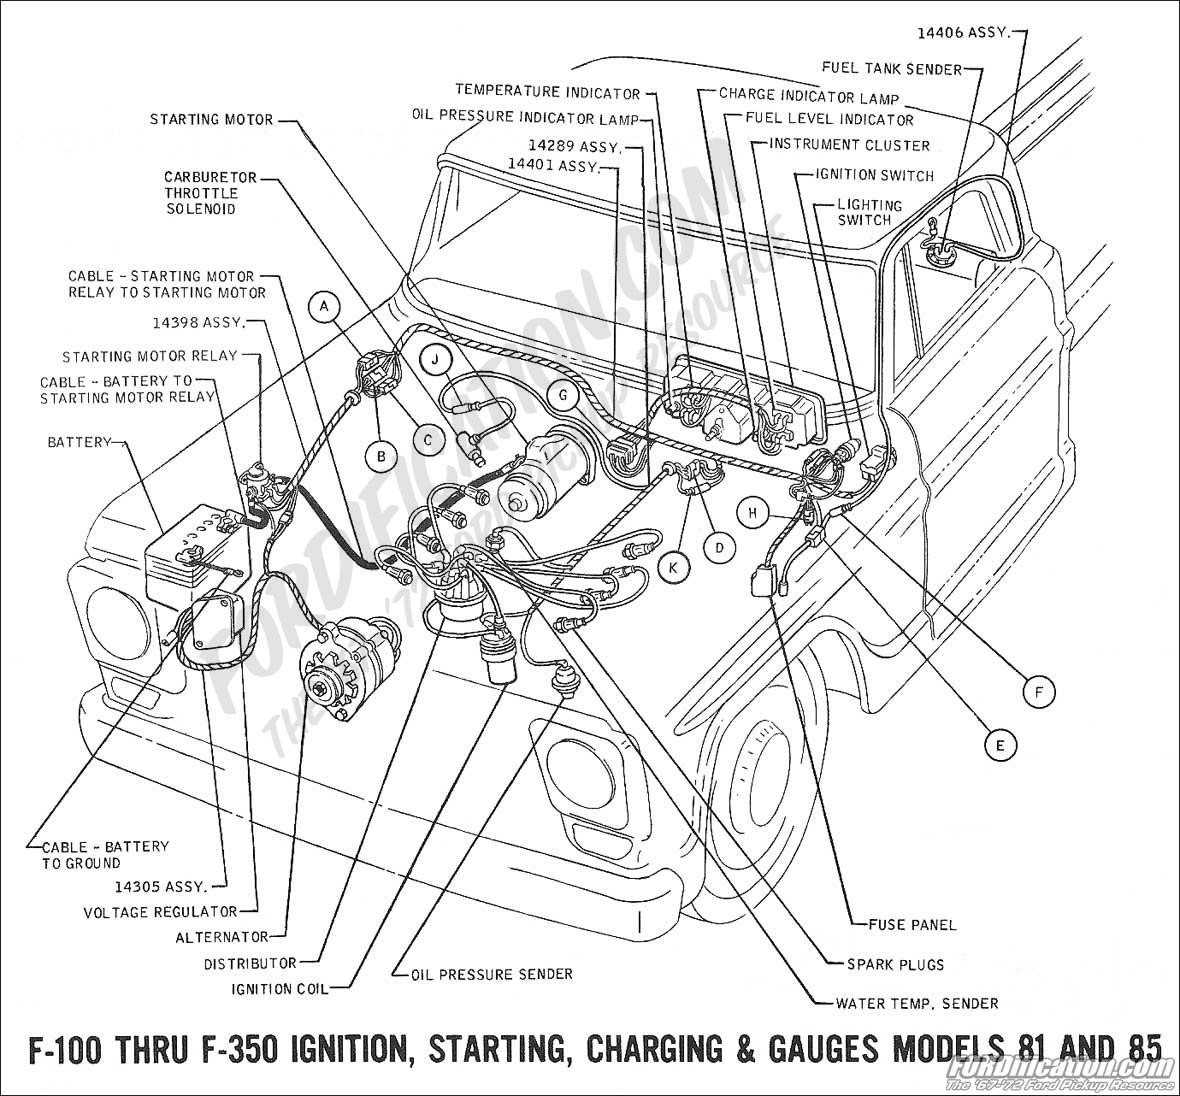 Diagrams in addition Cc3cb besides 72 Monte Carlo Wiring Harness as well Legendary Diesel Engine 300tdi also T12679064 Ford 460 starts but won 39 t run. on 79 ford fuel system diagram